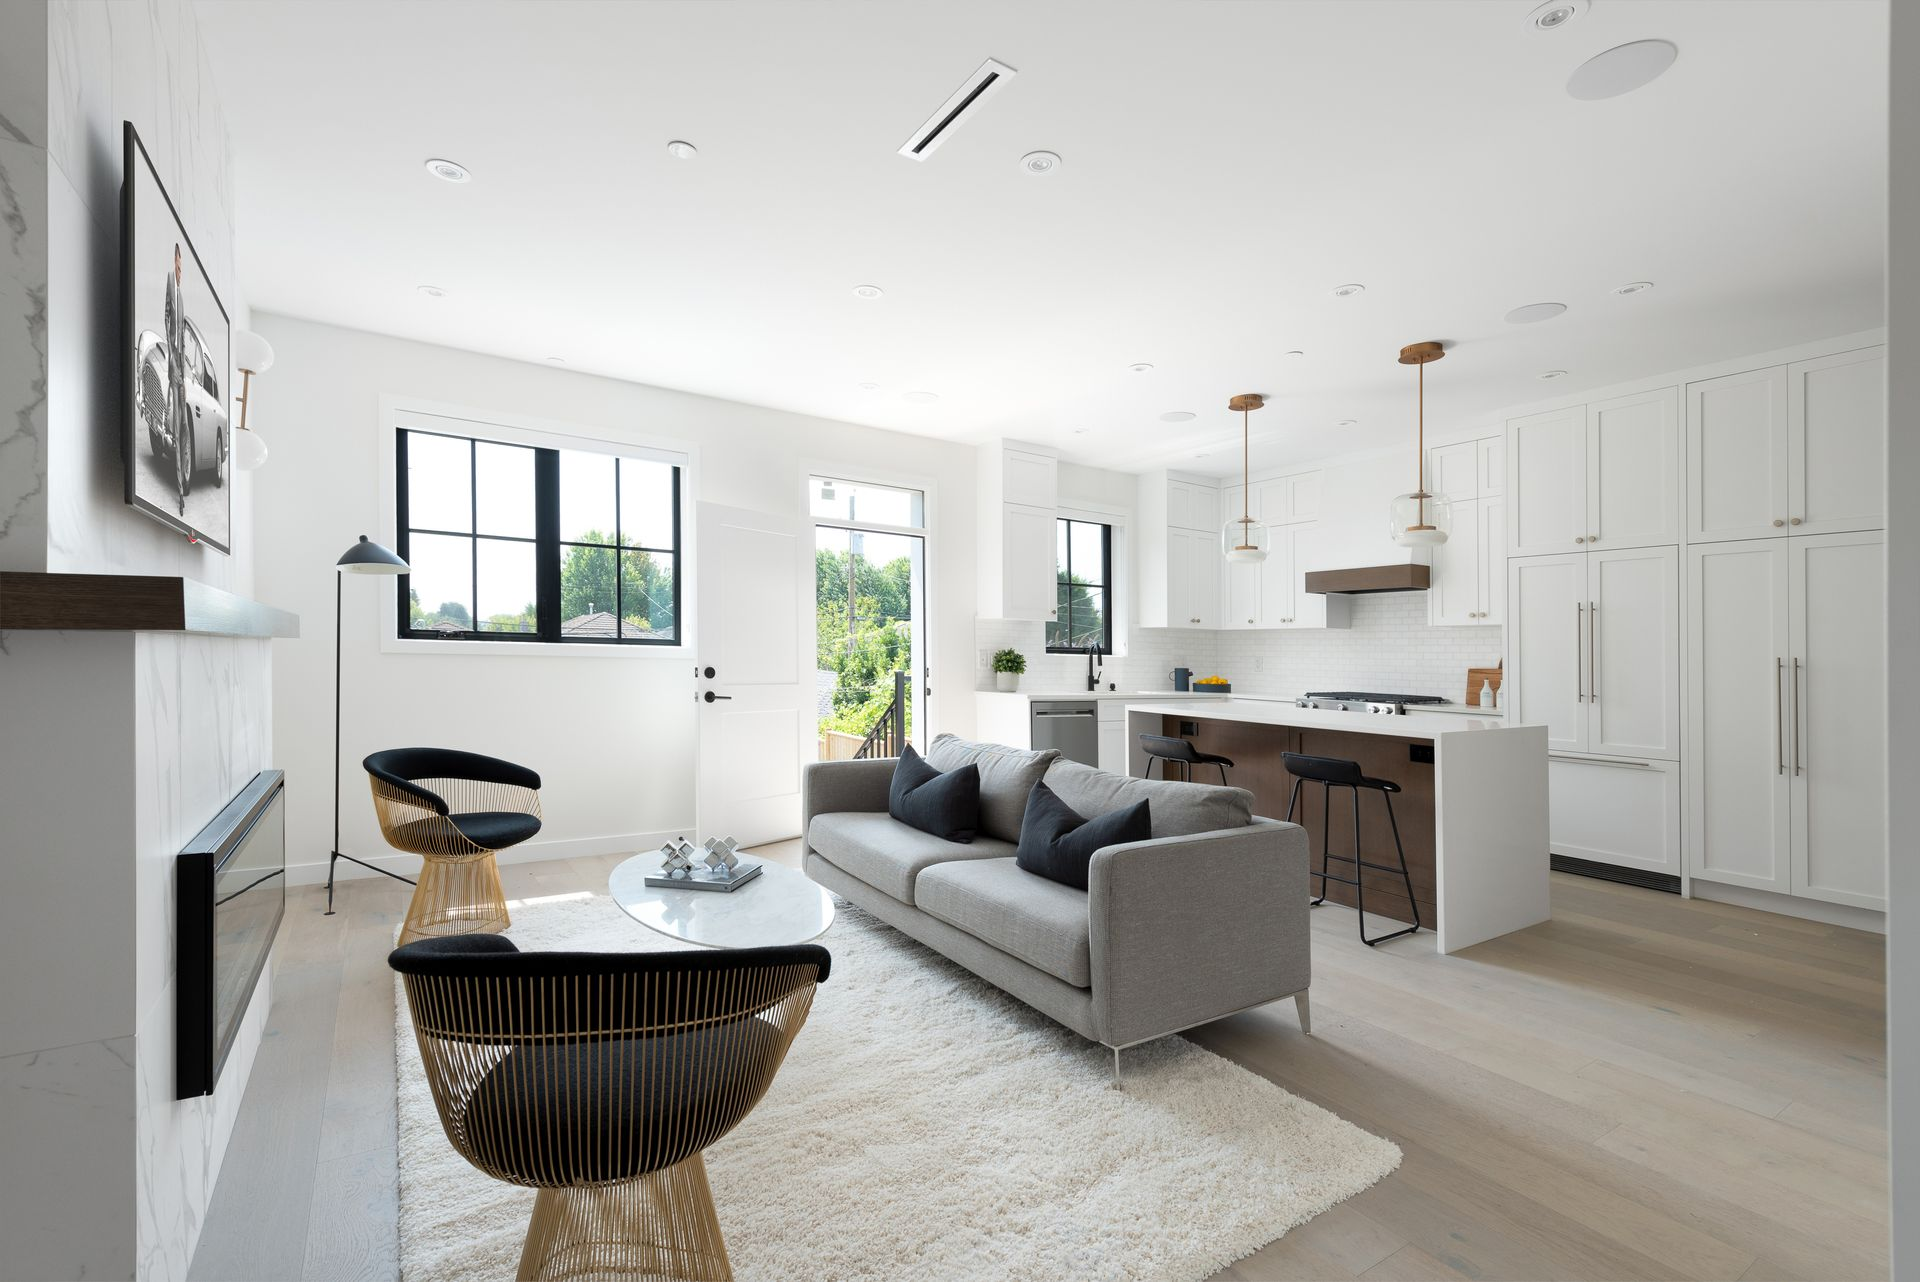 2478-e-pender-vancouver-360hometours-01 at